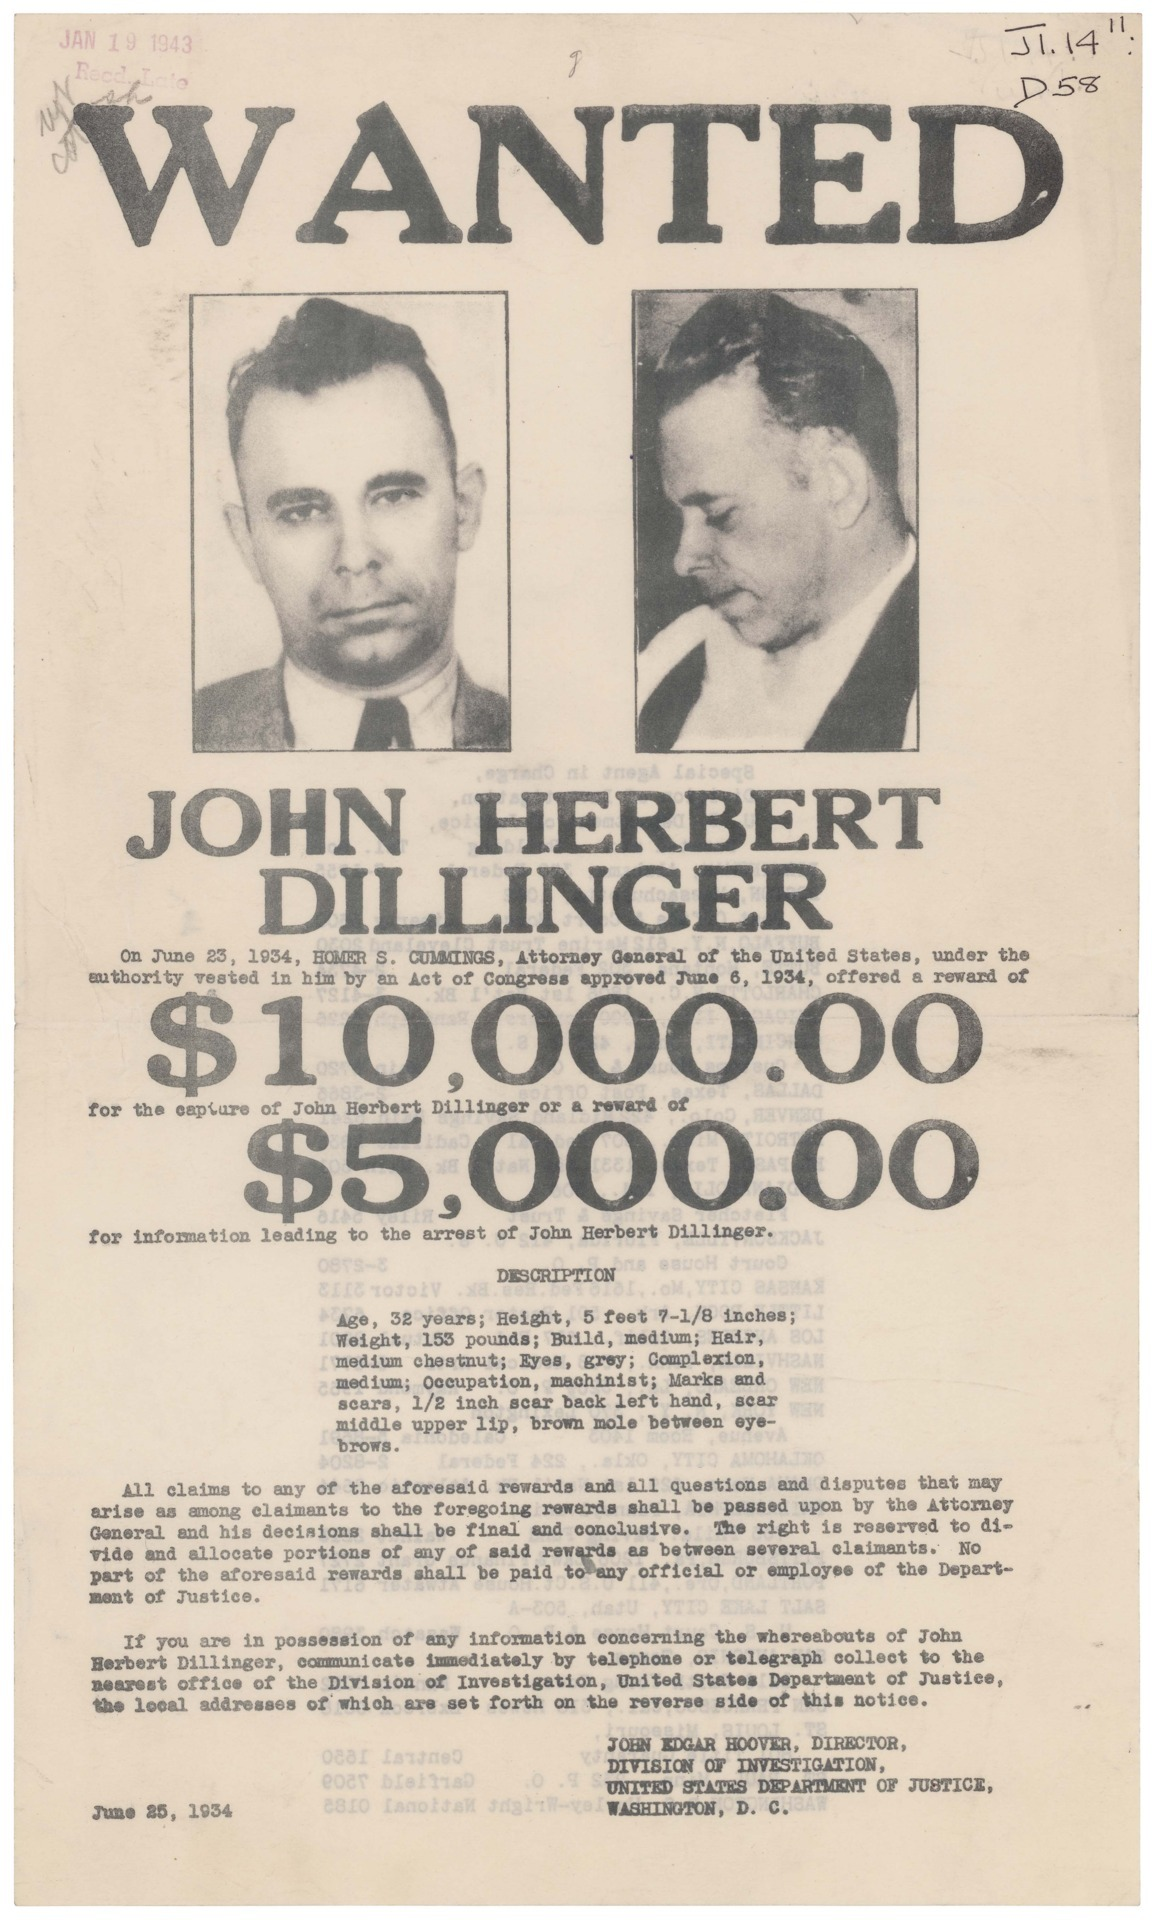 John Dillinger was the nation's top public enemy in 1934. He was charged in a string of bank robberies and for the murder of a police officer after being released from prison on parole for robbing a grocery store. Once again in police custody, Dillinger broke out of prison and fled the scene in a stolen car. He drove the car across state lines,  violating the National Motor Vehicle Theft Act (a federal offense). The investigation was then turned over to the Federal Bureau of Investigation (FBI). This wanted poster was printed by the government in June 1934. Dillinger was located and surrounded by FBI agents at the Chicago Biograph Theater on July 22. Dillinger reached for his gun, and was shot and killed at the scene. FBI Wanted Poster of John Dillinger, 06/25/1934, Publications of the U.S. Government (ARC 306713)